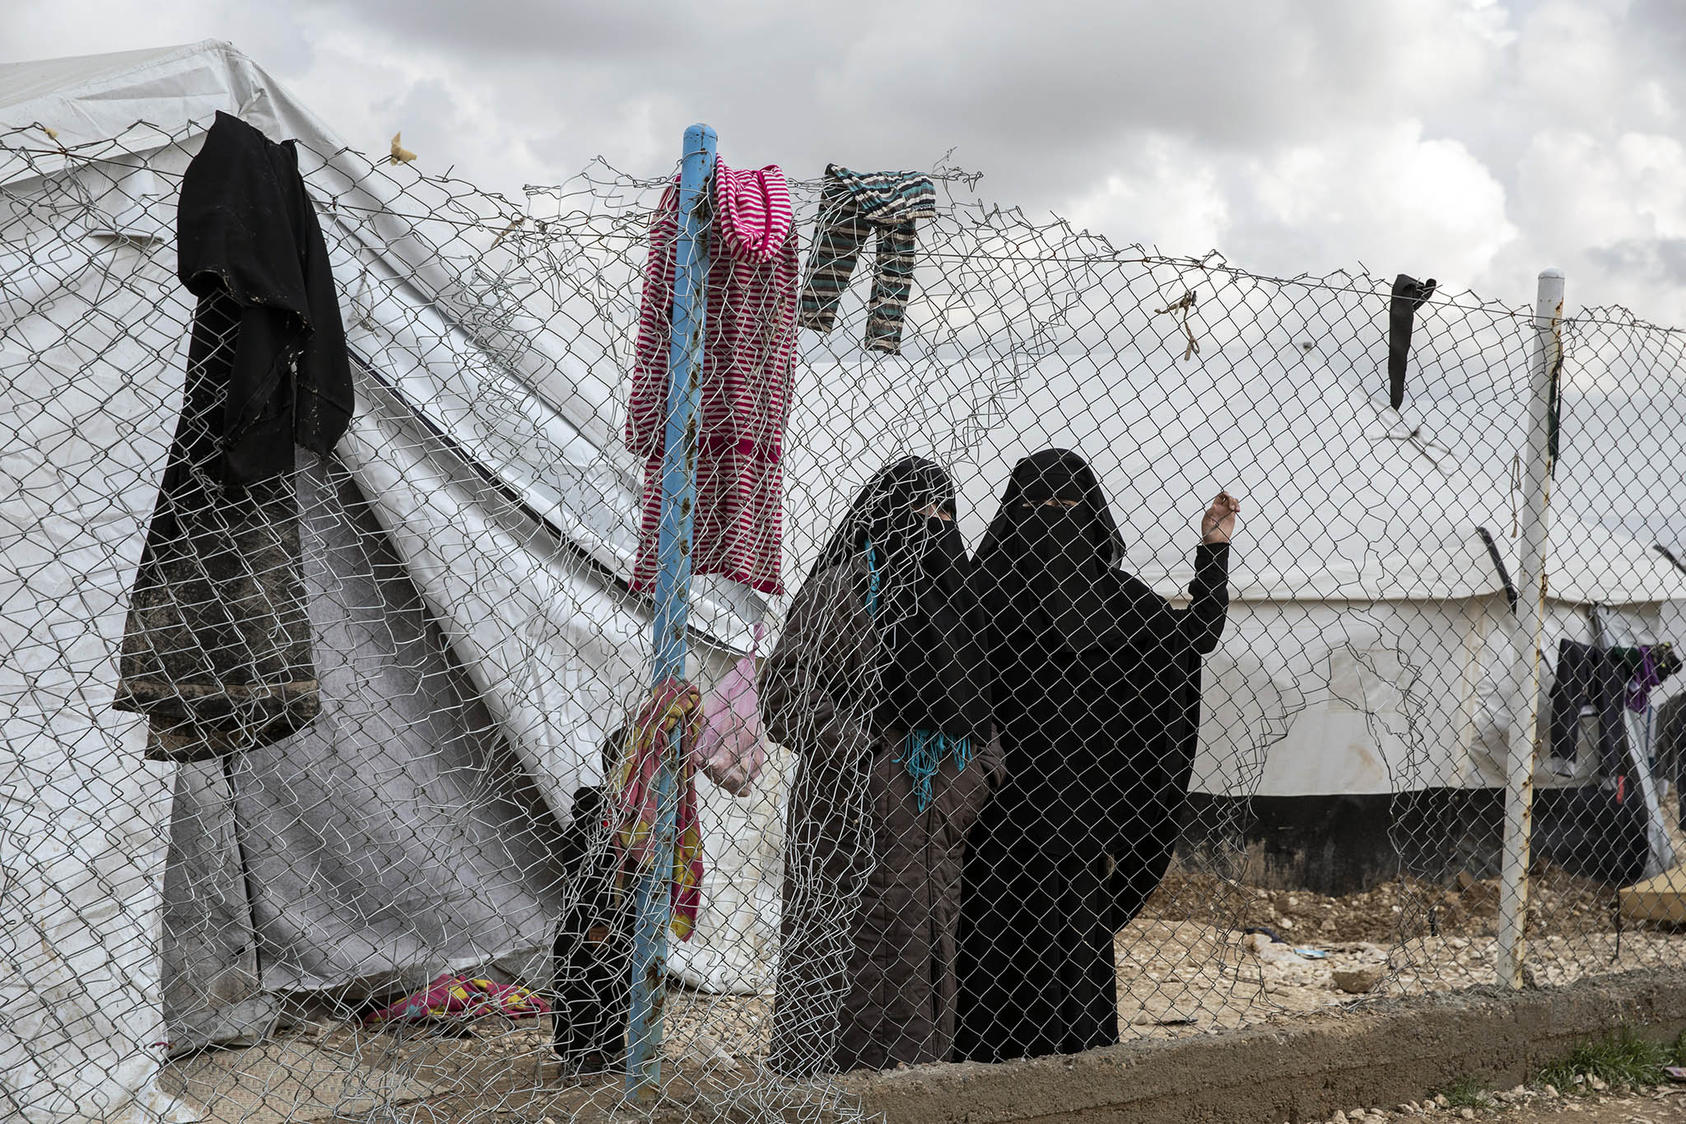 Women who fled the Islamic State's last areas of control in Syria at the al-Hol camp in northern Syria on March 28, 2019. (Ivor Prickett/The New York Times)